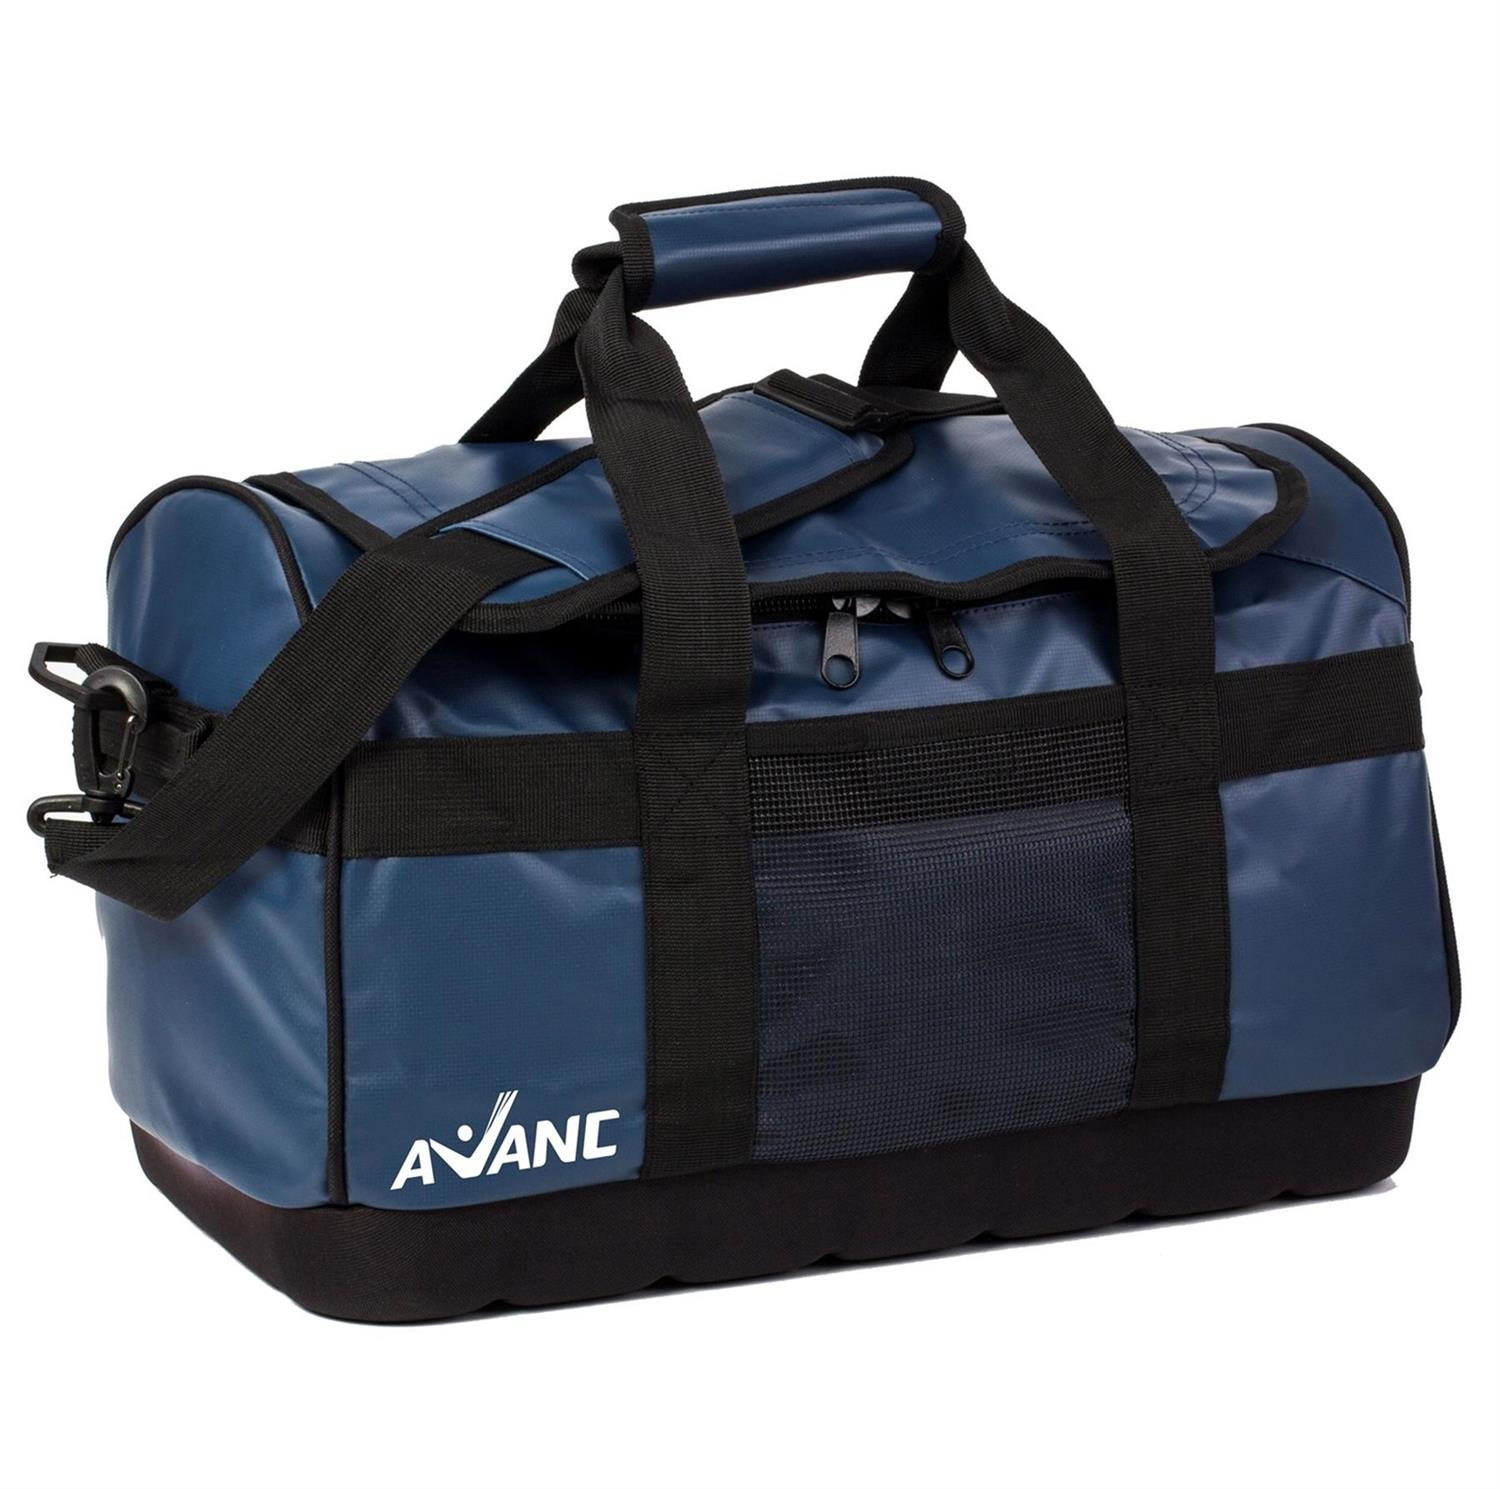 Heavy durable travelling Bag 30L with EVA base